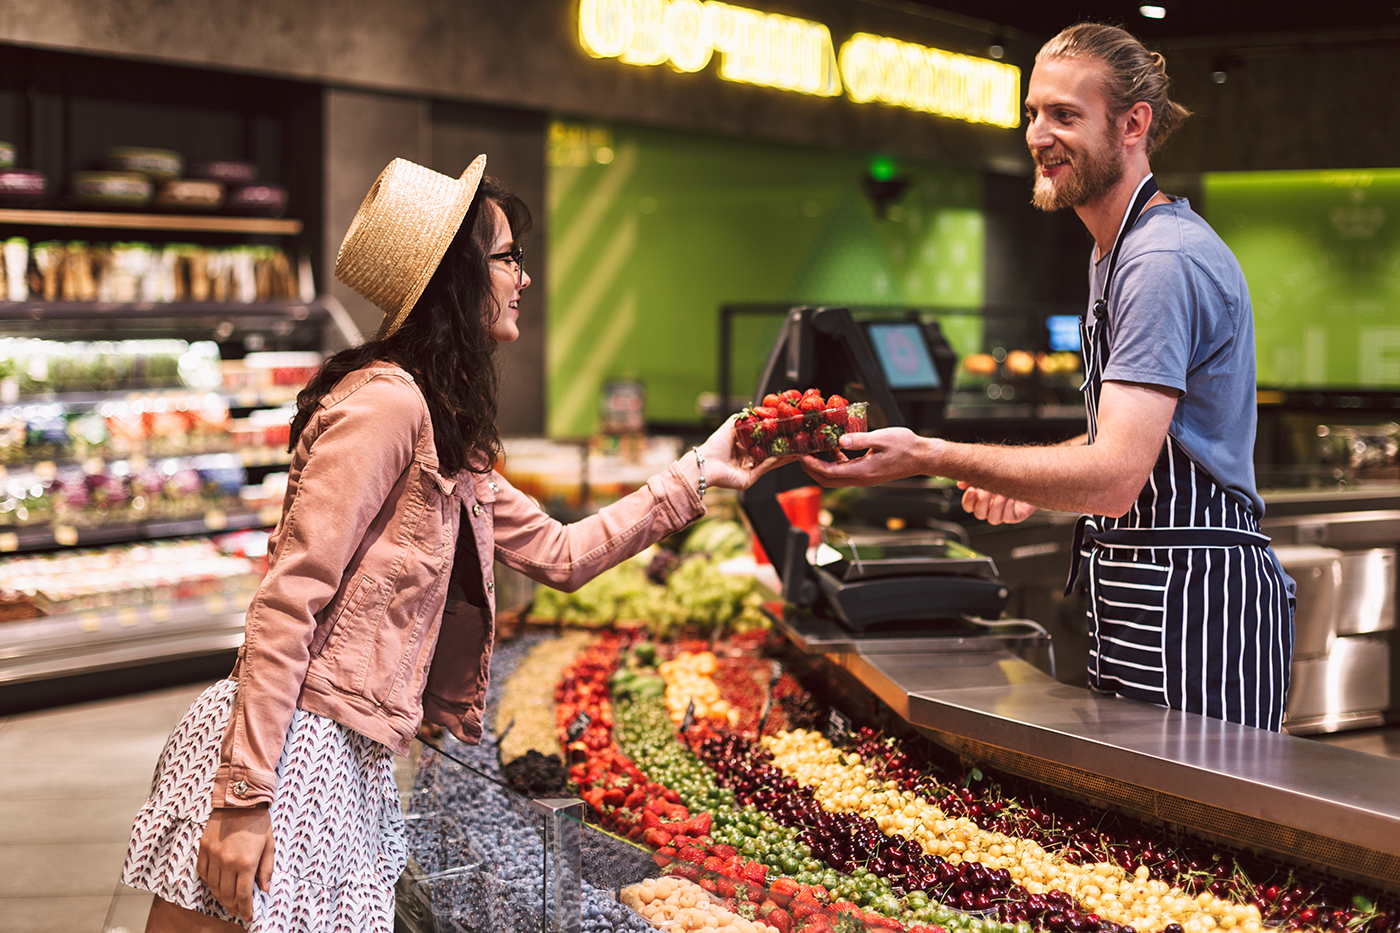 In 2019, Beating Big Box Stores at Their Own Game Means Reshaping the Grocery Retail Customer Experience